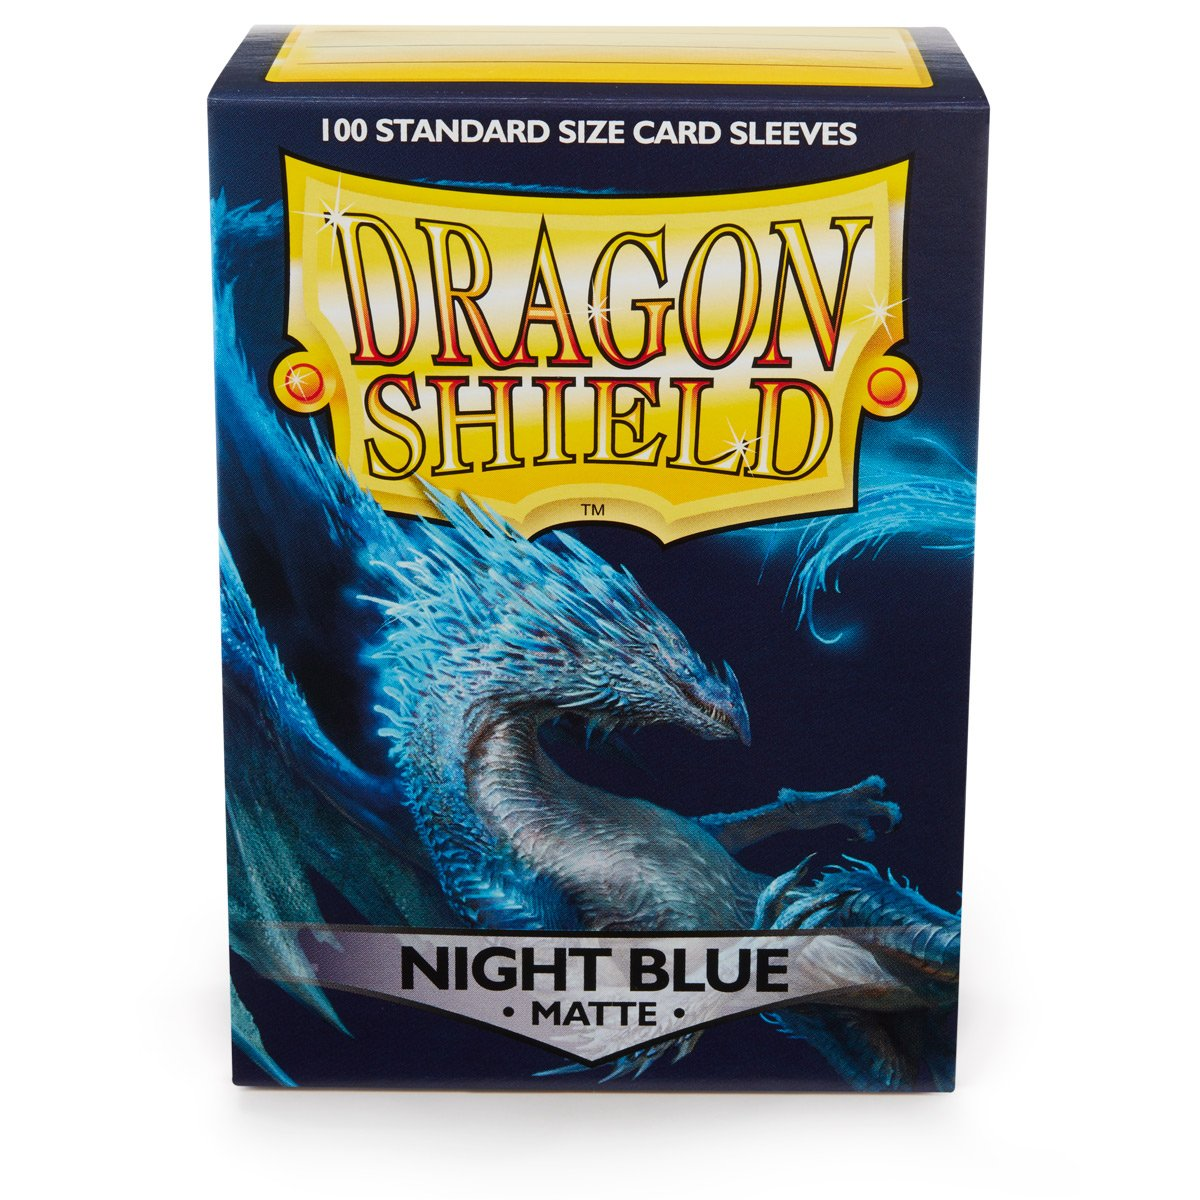 Dragon Shield Standard Matte Night Blue 'Botan' – (100ct) | Jack's on Queen